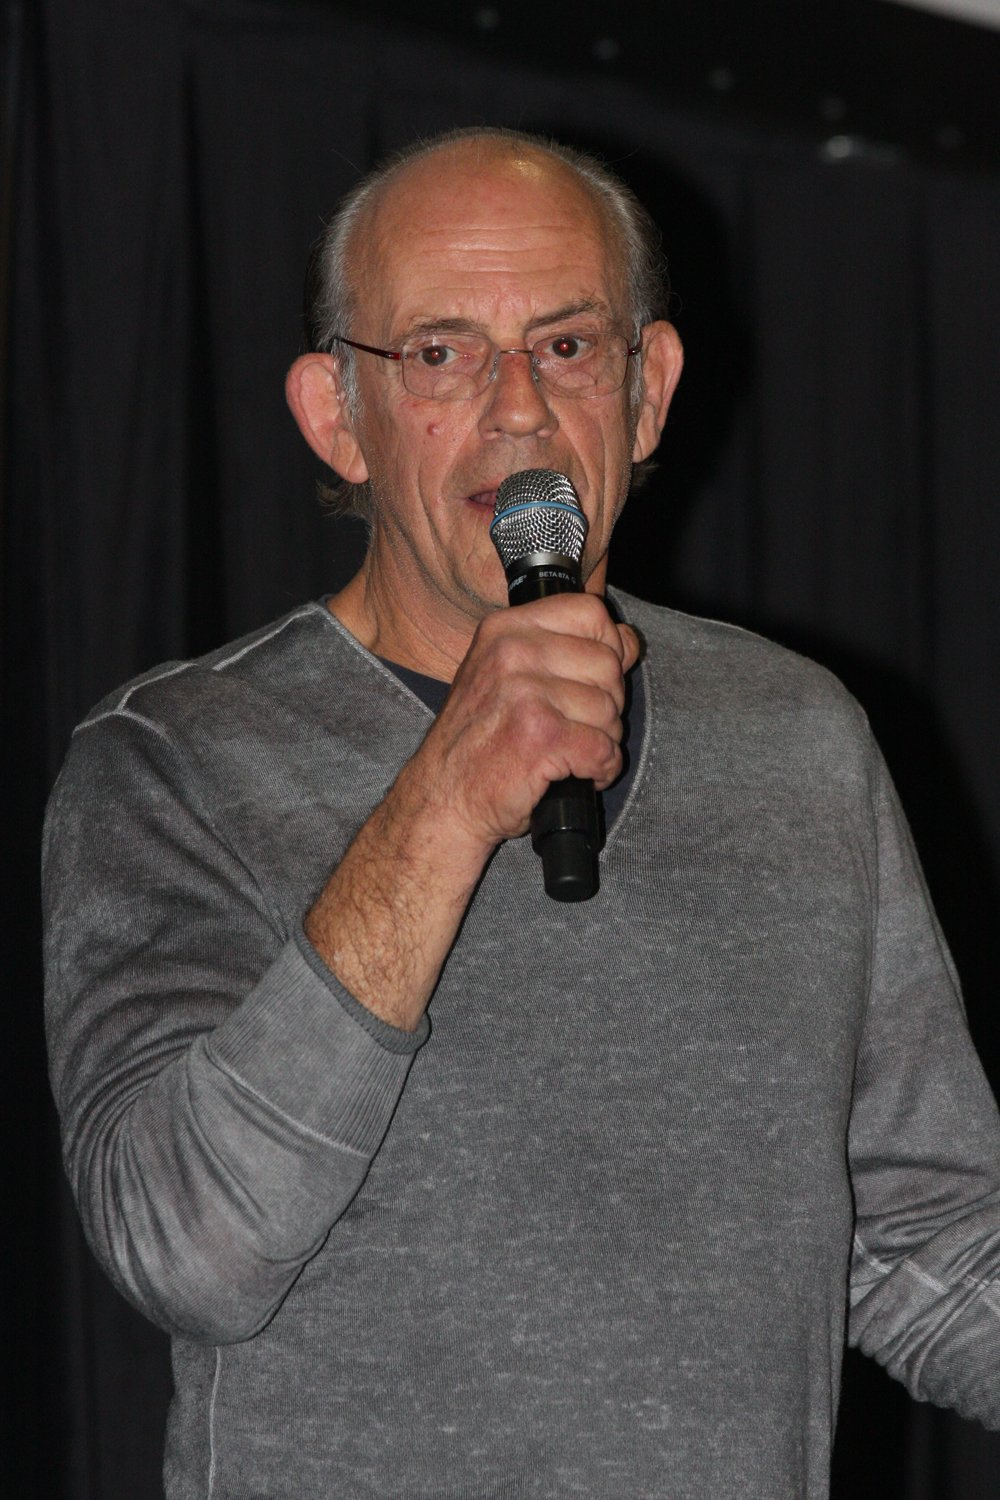 Christopher Lloyd /CC BY-SA 2.0/ Eva Rinaldi Celebrity Photographer / flickr